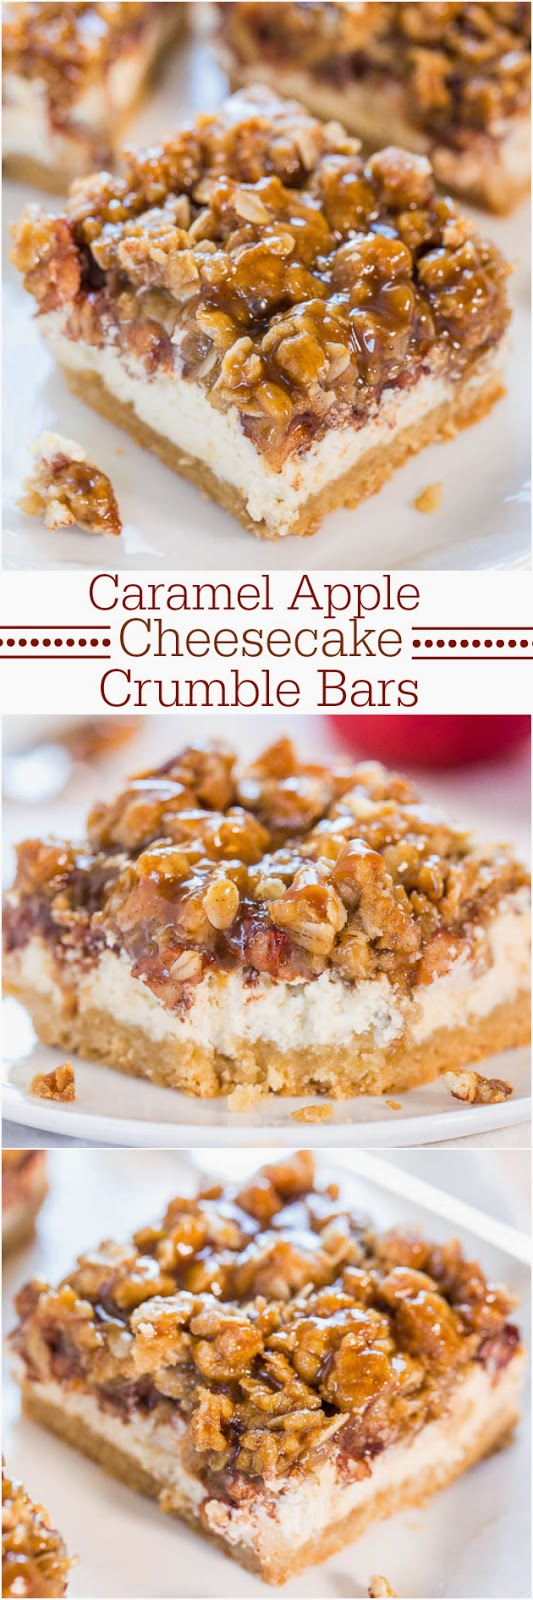 http://www.averiecooks.com/2014/10/caramel-apple-cheesecake-crumble-bars.html